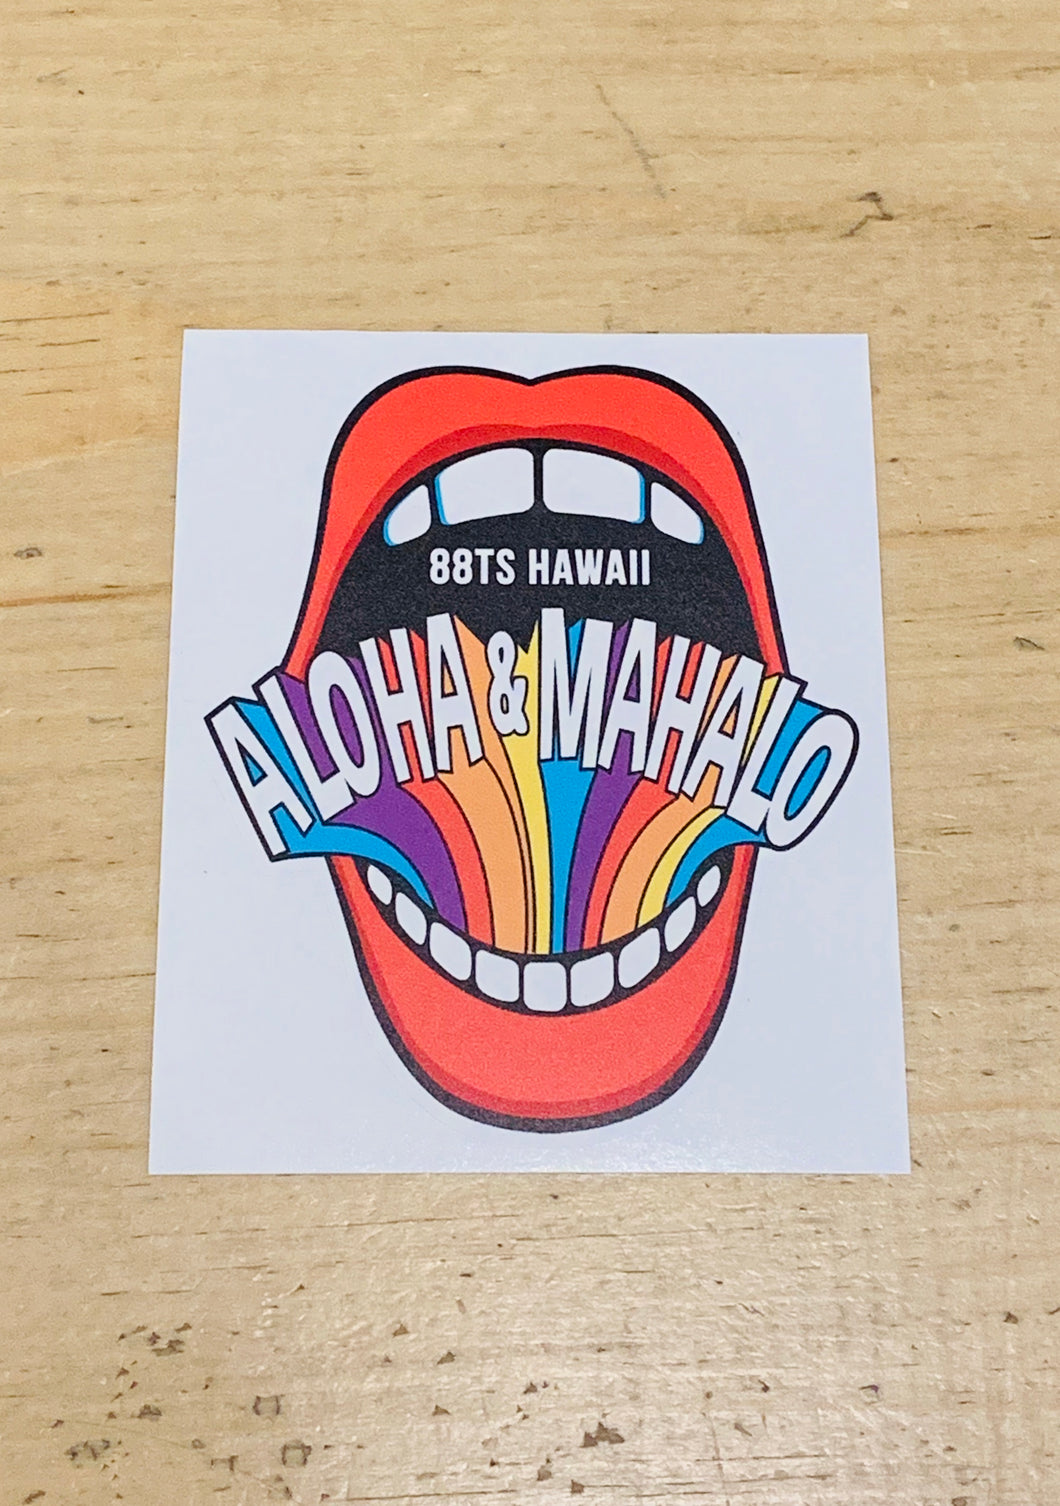 ALOHA AND MAHALO LIPS STICKER